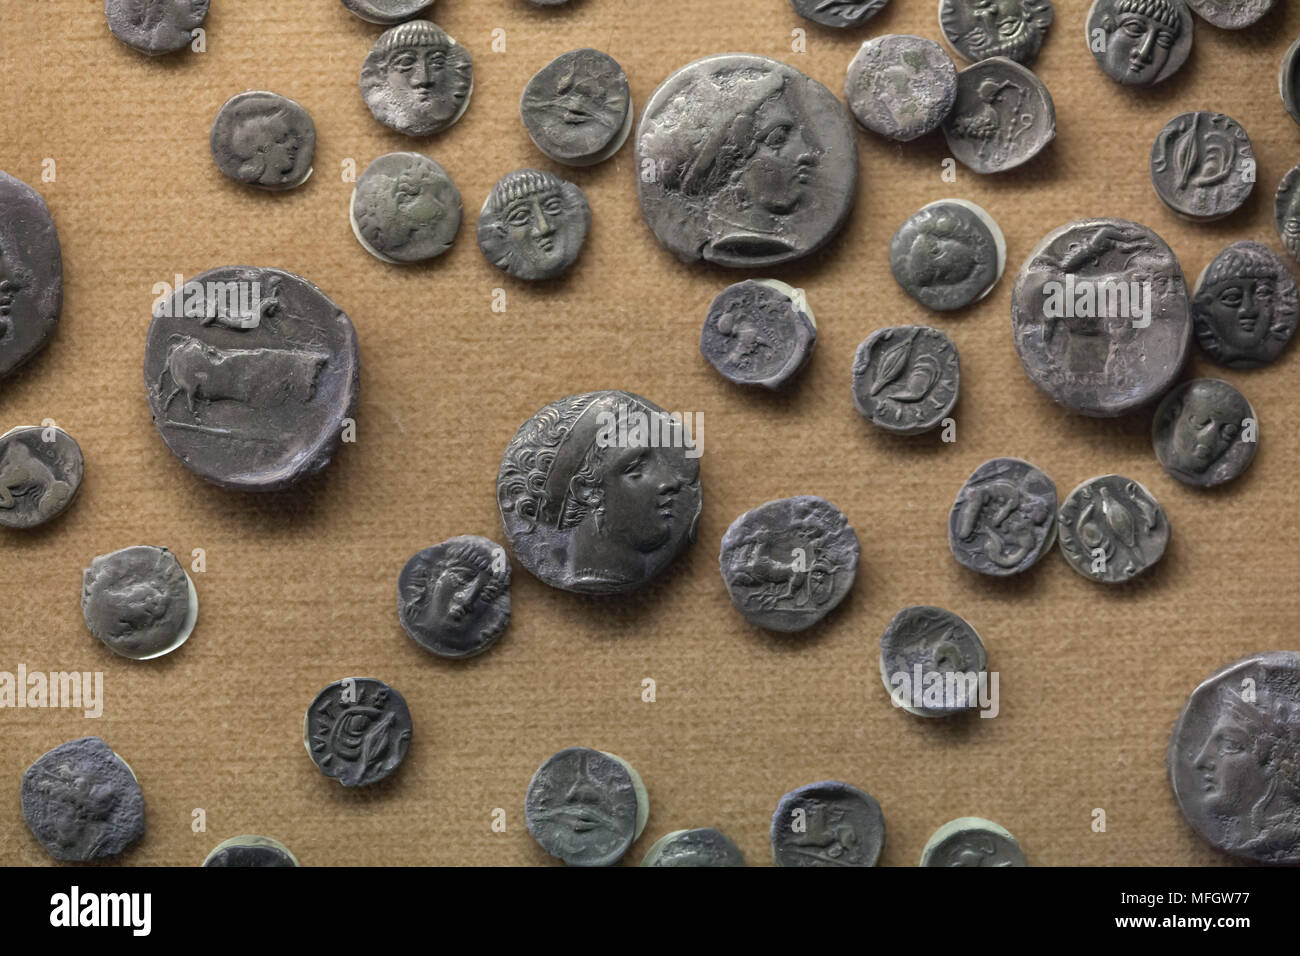 Ancient Greek silver coins (didrachm and others) from the treasure found in Cales dated from the last decade of the 4th century BC on display in the National Archaeological Museum (Museo Archeologico Nazionale di Napoli) in Naples, Campania, Italy. - Stock Image